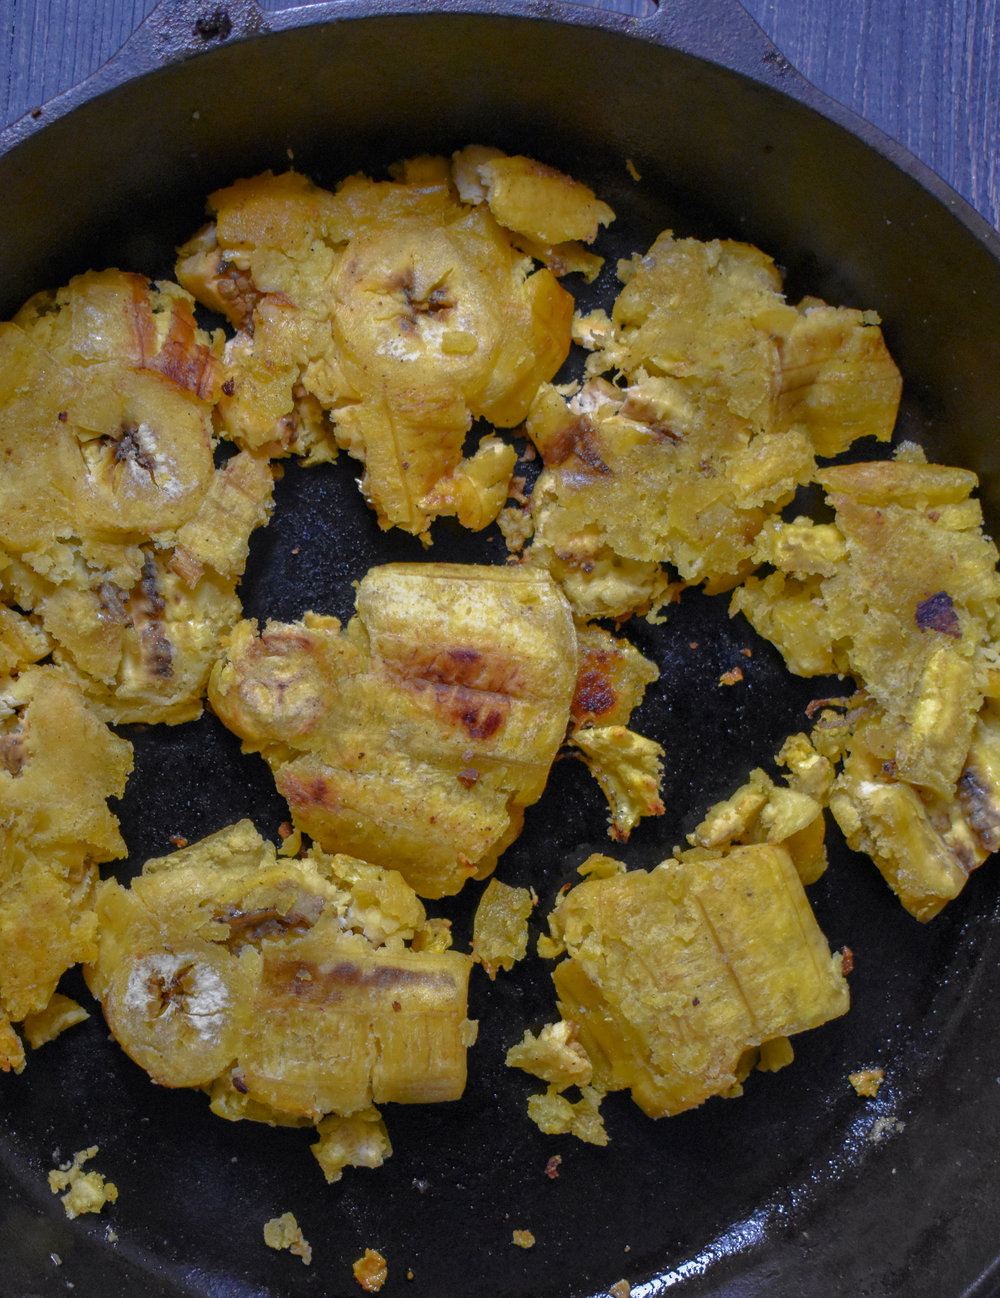 7. With the plantains, use a glass or spatula to smash them down. Take the smashed pieces and throw back into a pan and cook for 1-2 minutes on each side to firm them up.